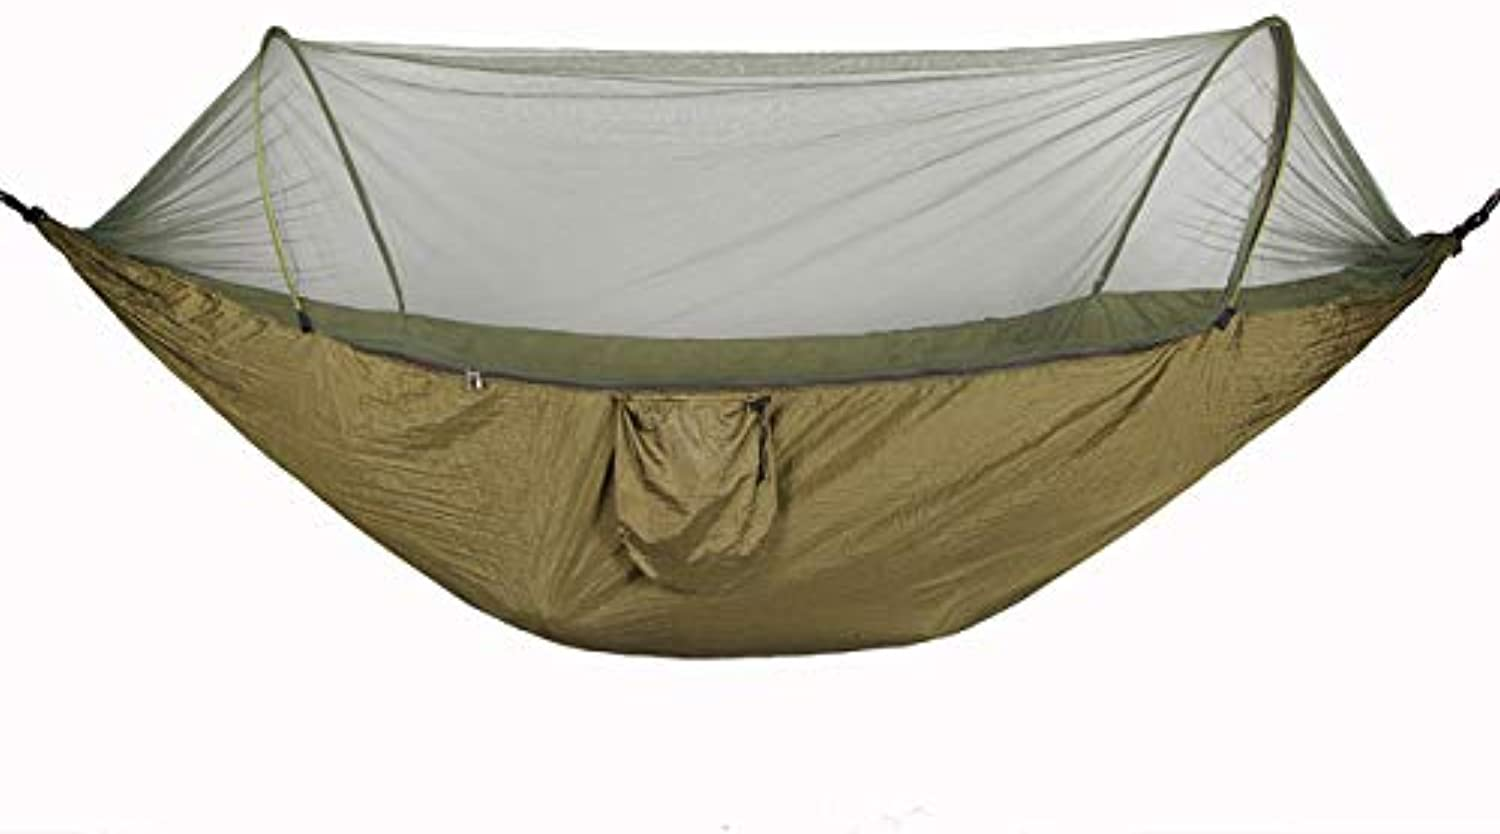 The Newest Outdoor Hammock Camping 290  145cm Quick Openning Mosquito Nets Portable Hammac Double Person Handing Chair Swing Bed   I